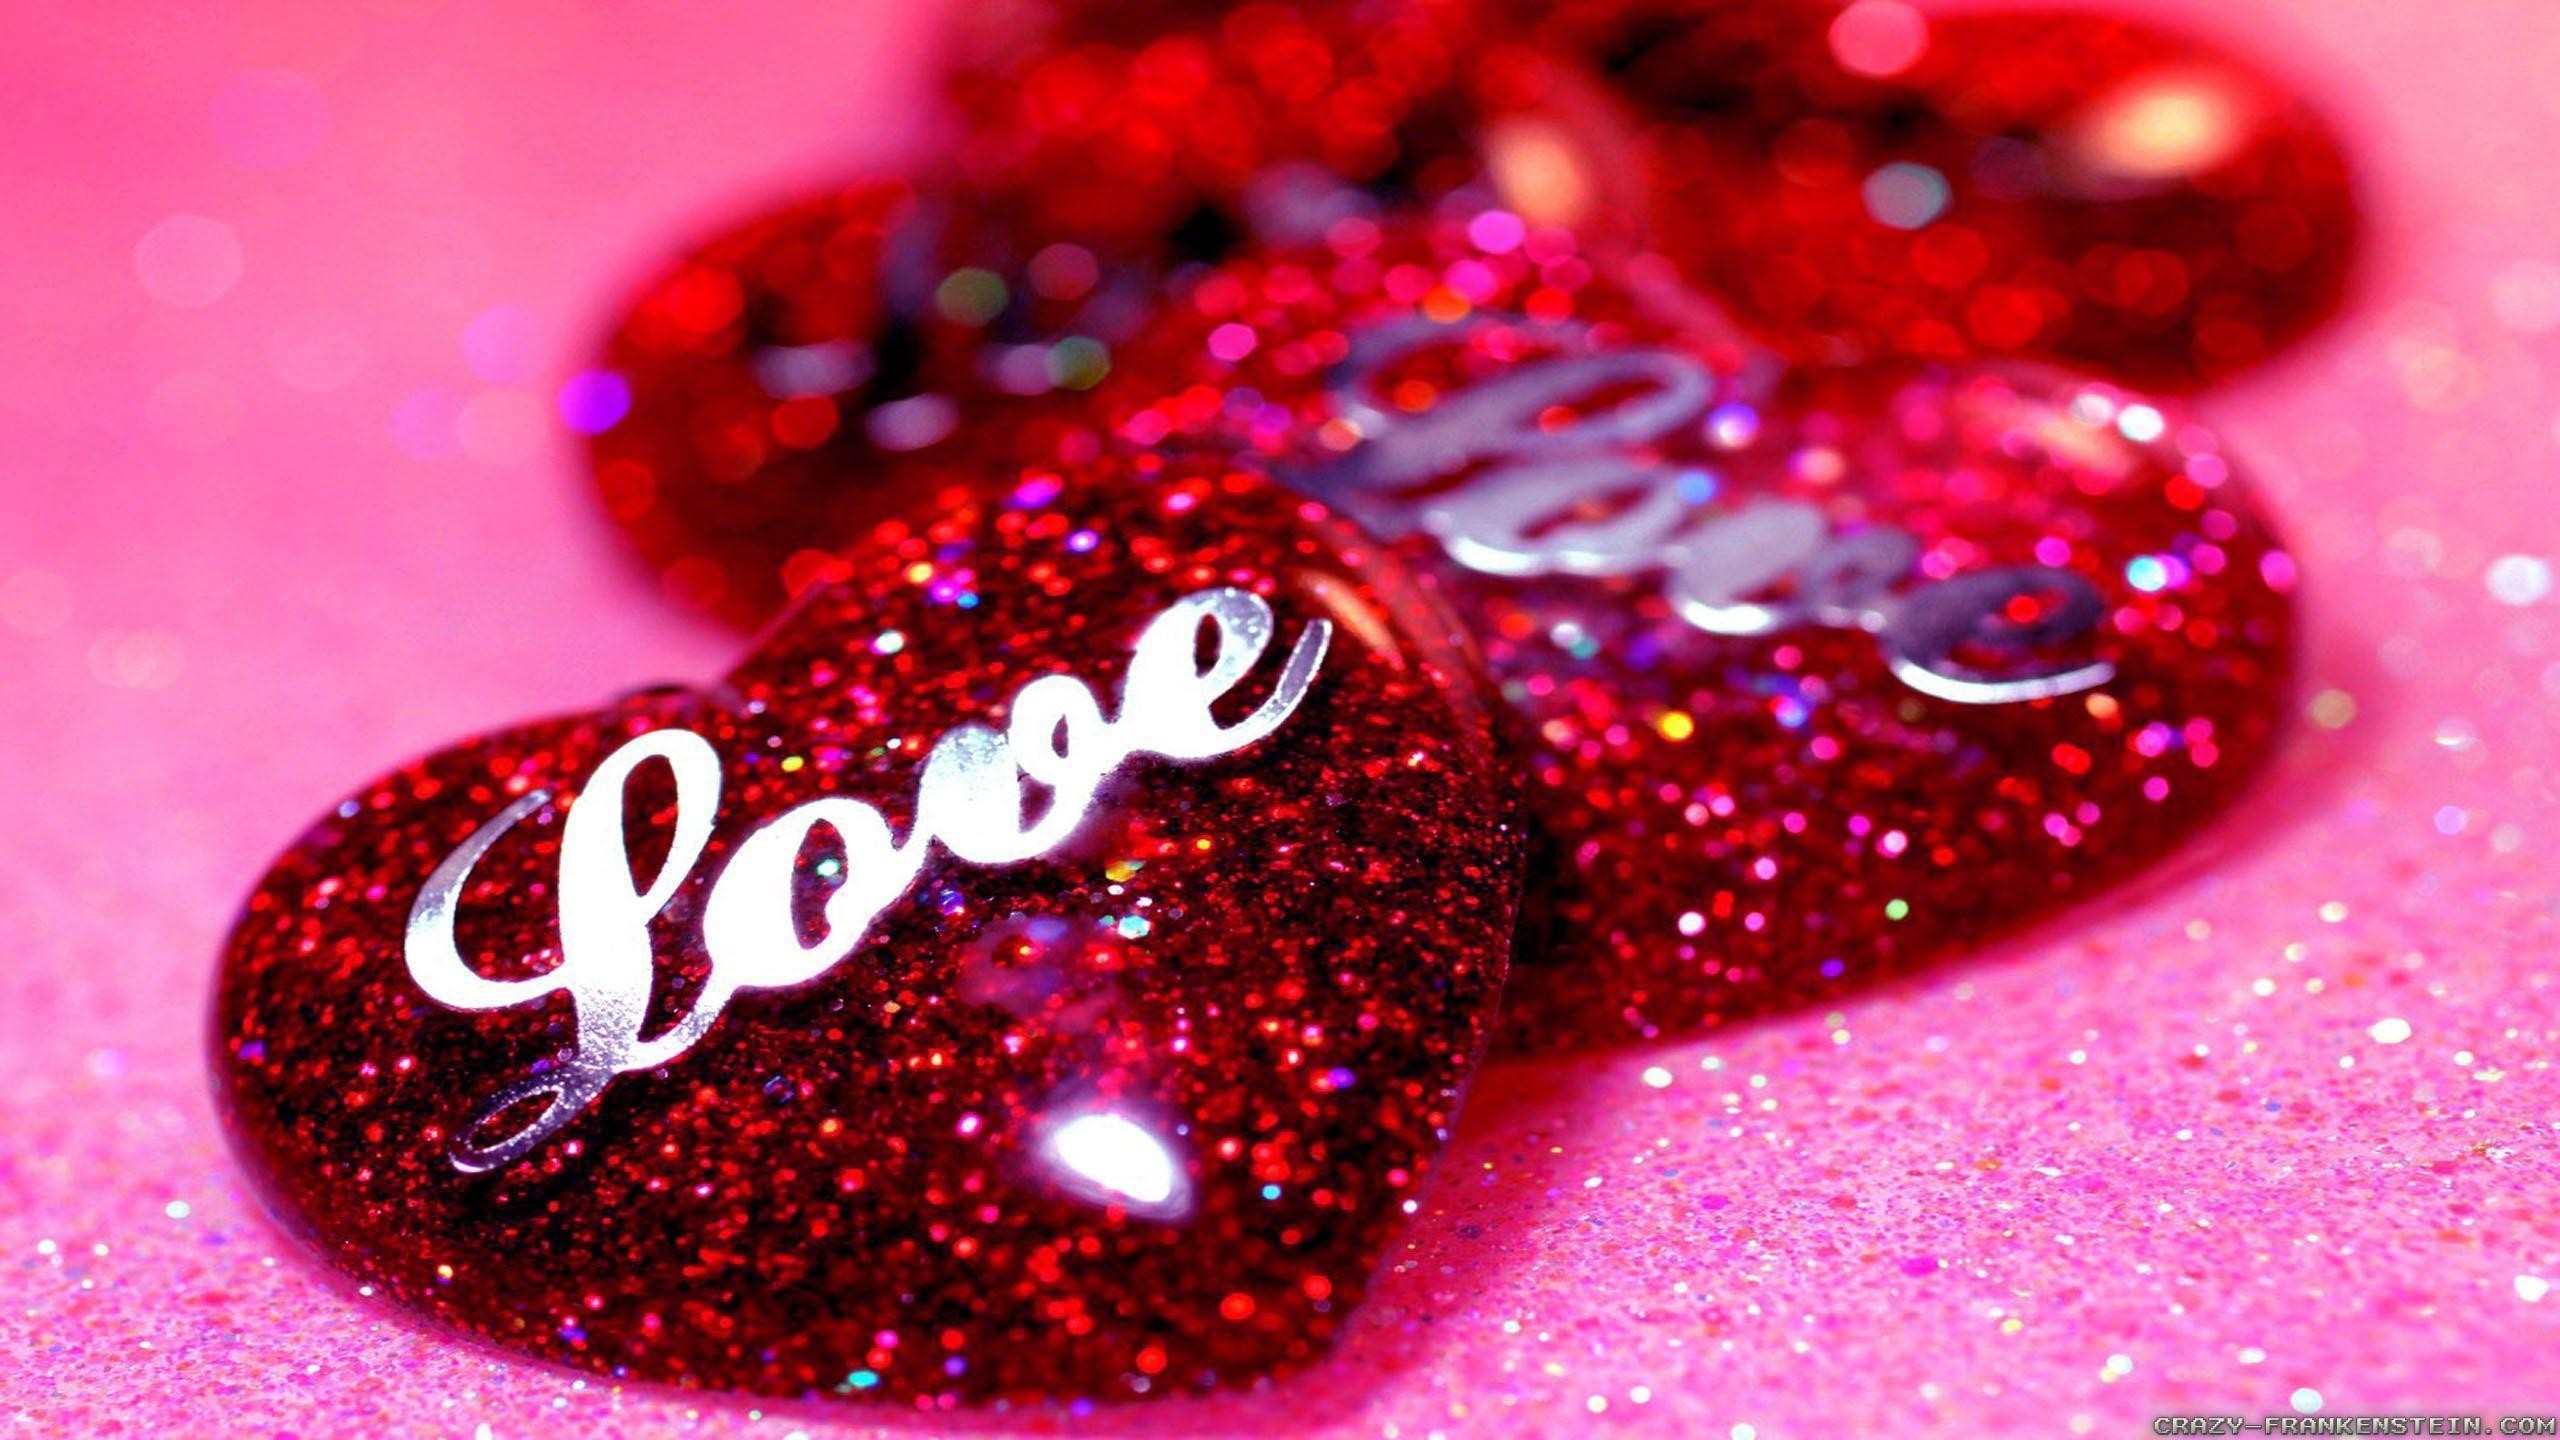 Love 3D Wallpaper 60 Images